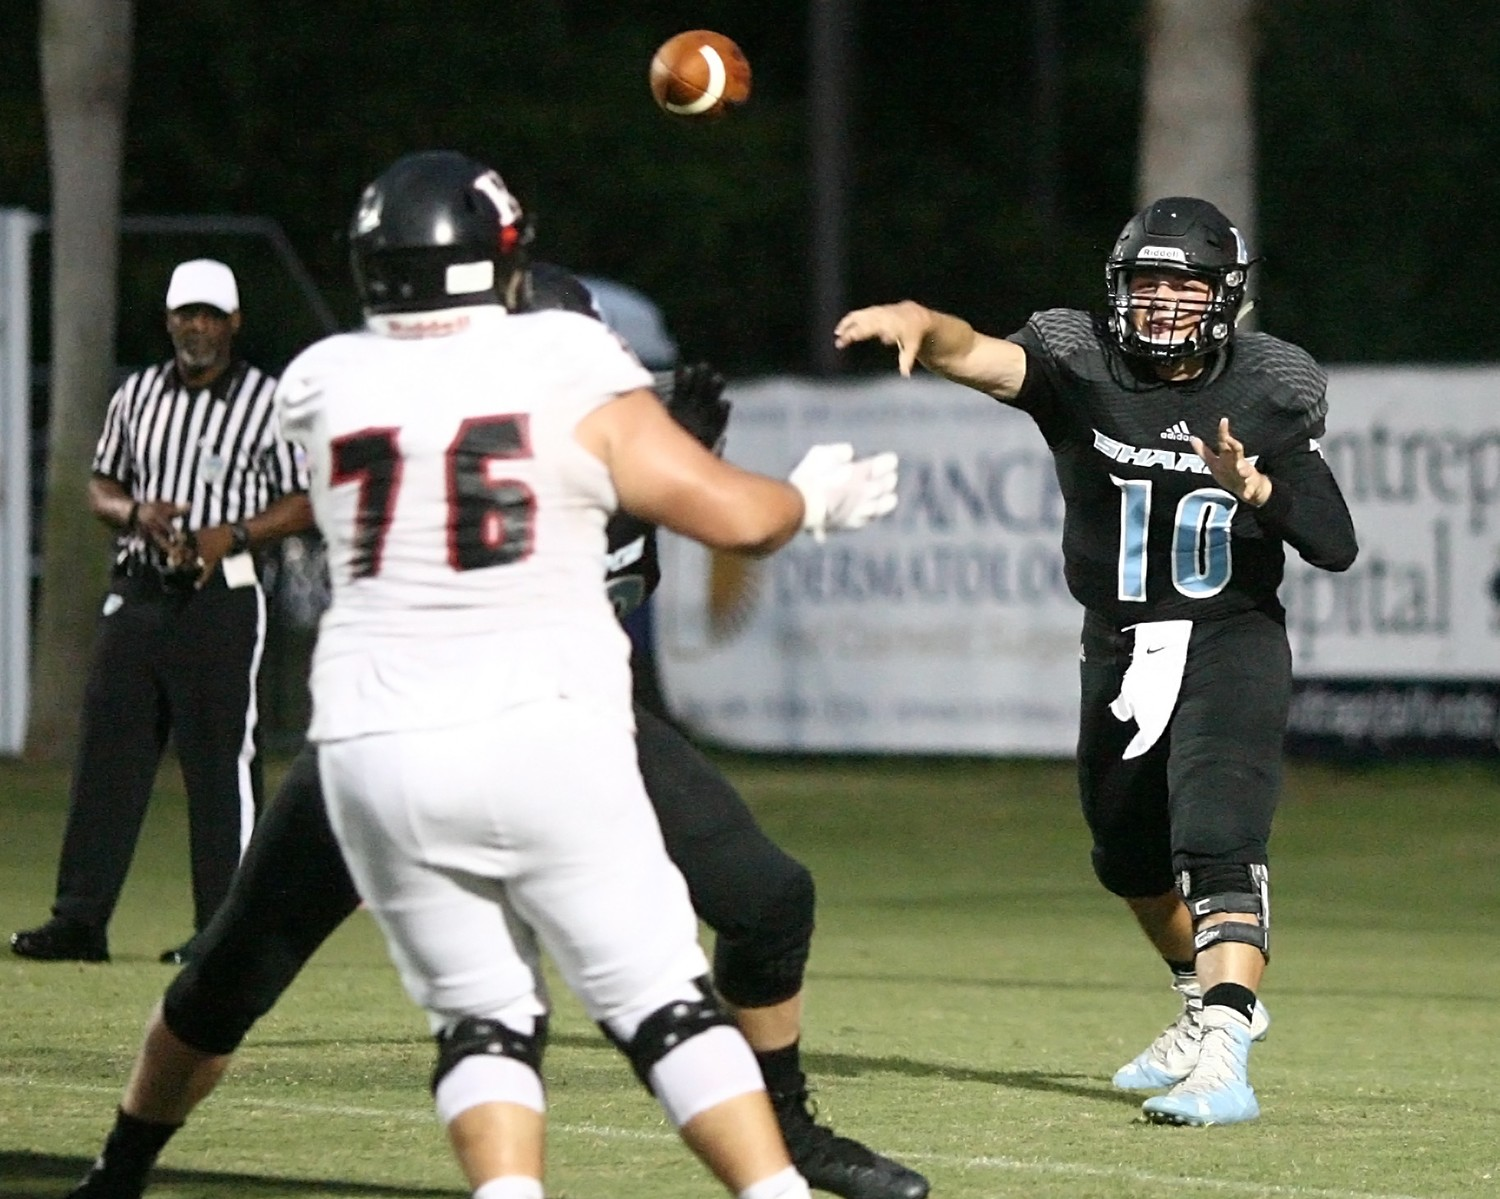 Jack Murrah moves the ball downfield for the Sharks.